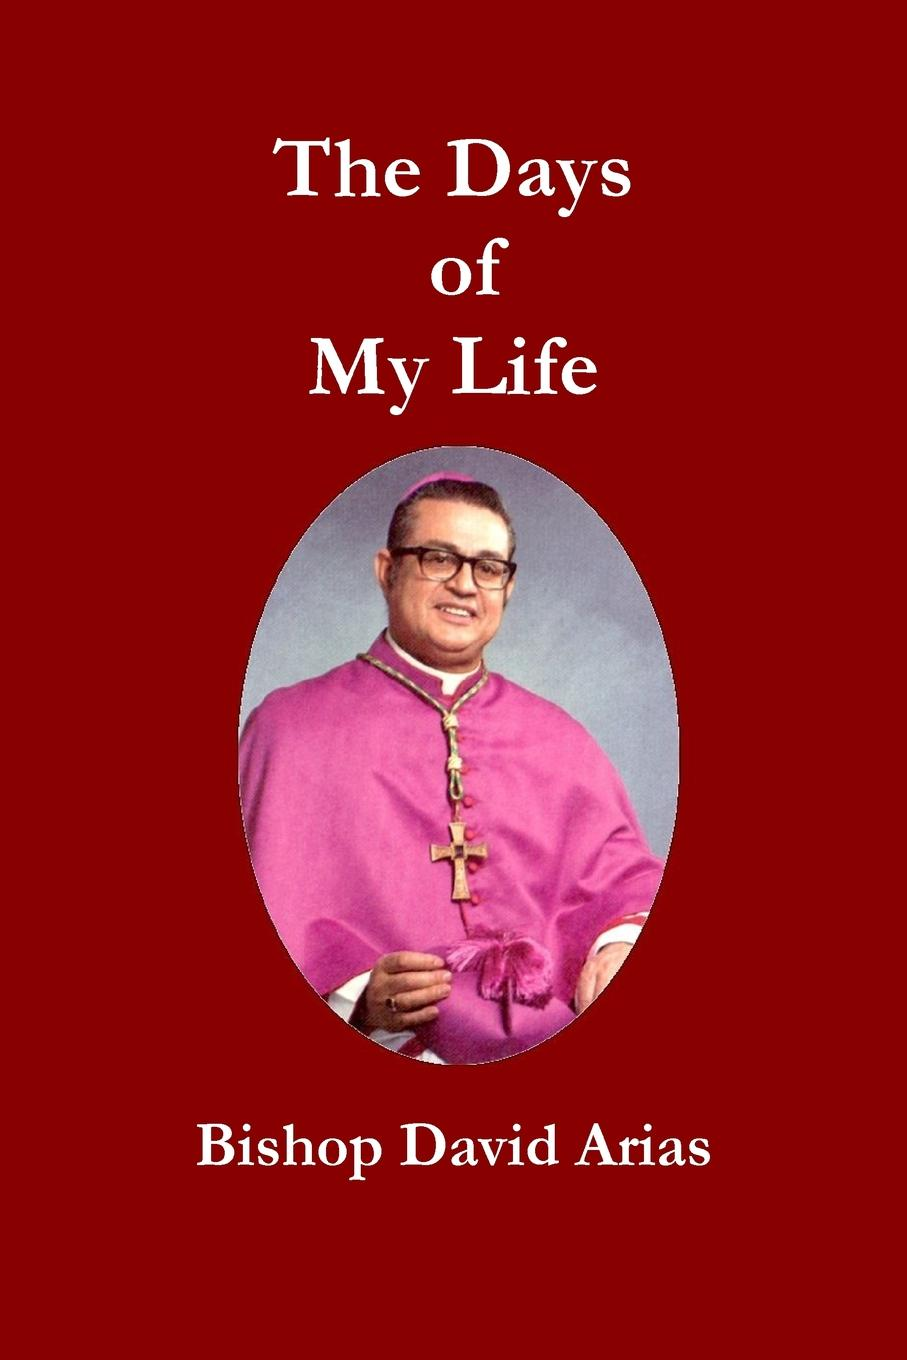 David Arias The Days of My Life barr amelia e all the days of my life an autobiography page 5 page 10 page 8